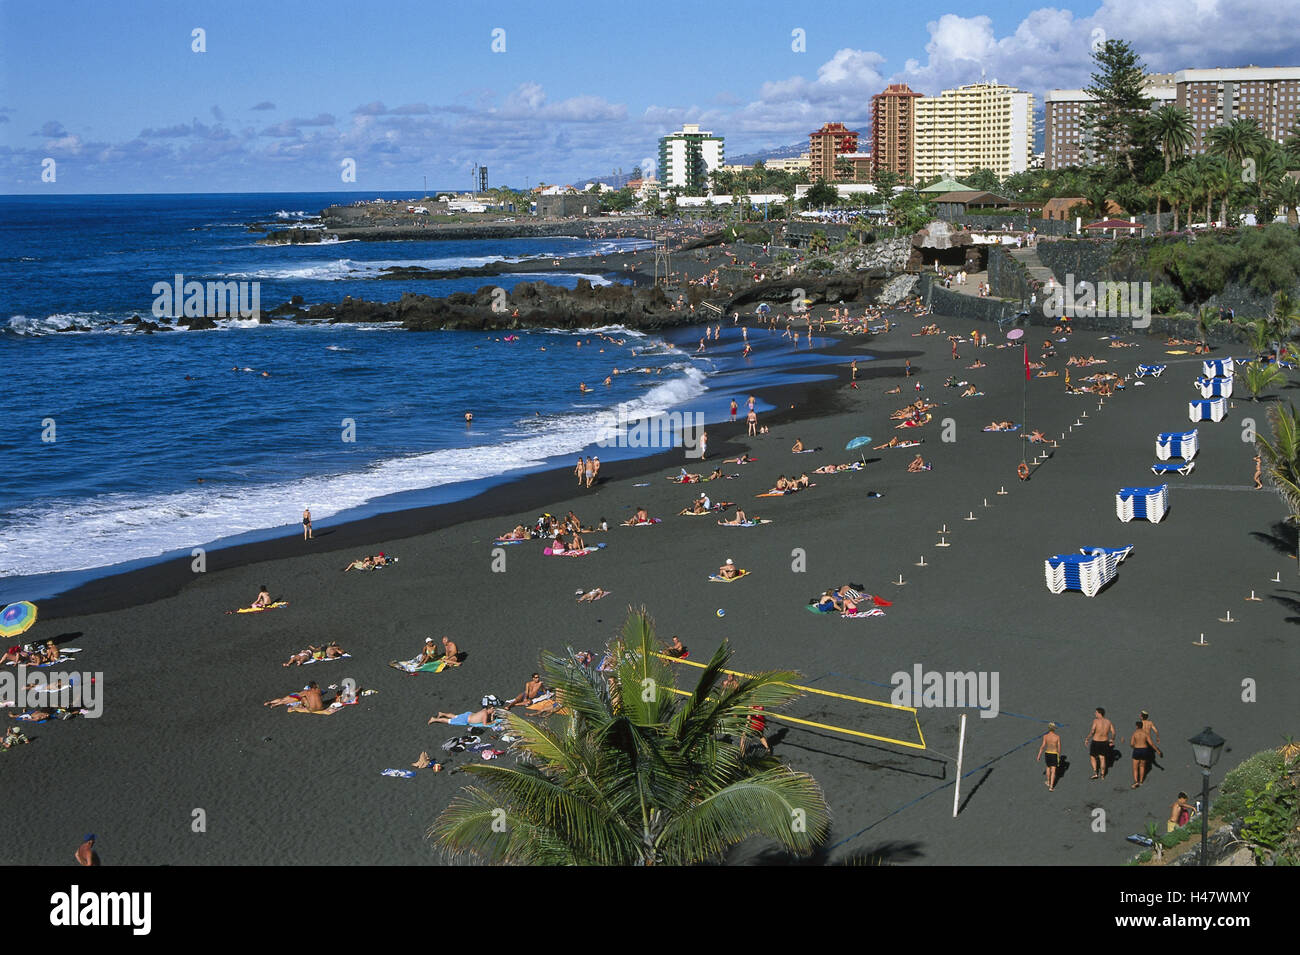 Spain the canaries island tenerife puerto de la cruz playa stock photo 123105051 alamy - Playa puerto de la cruz tenerife ...